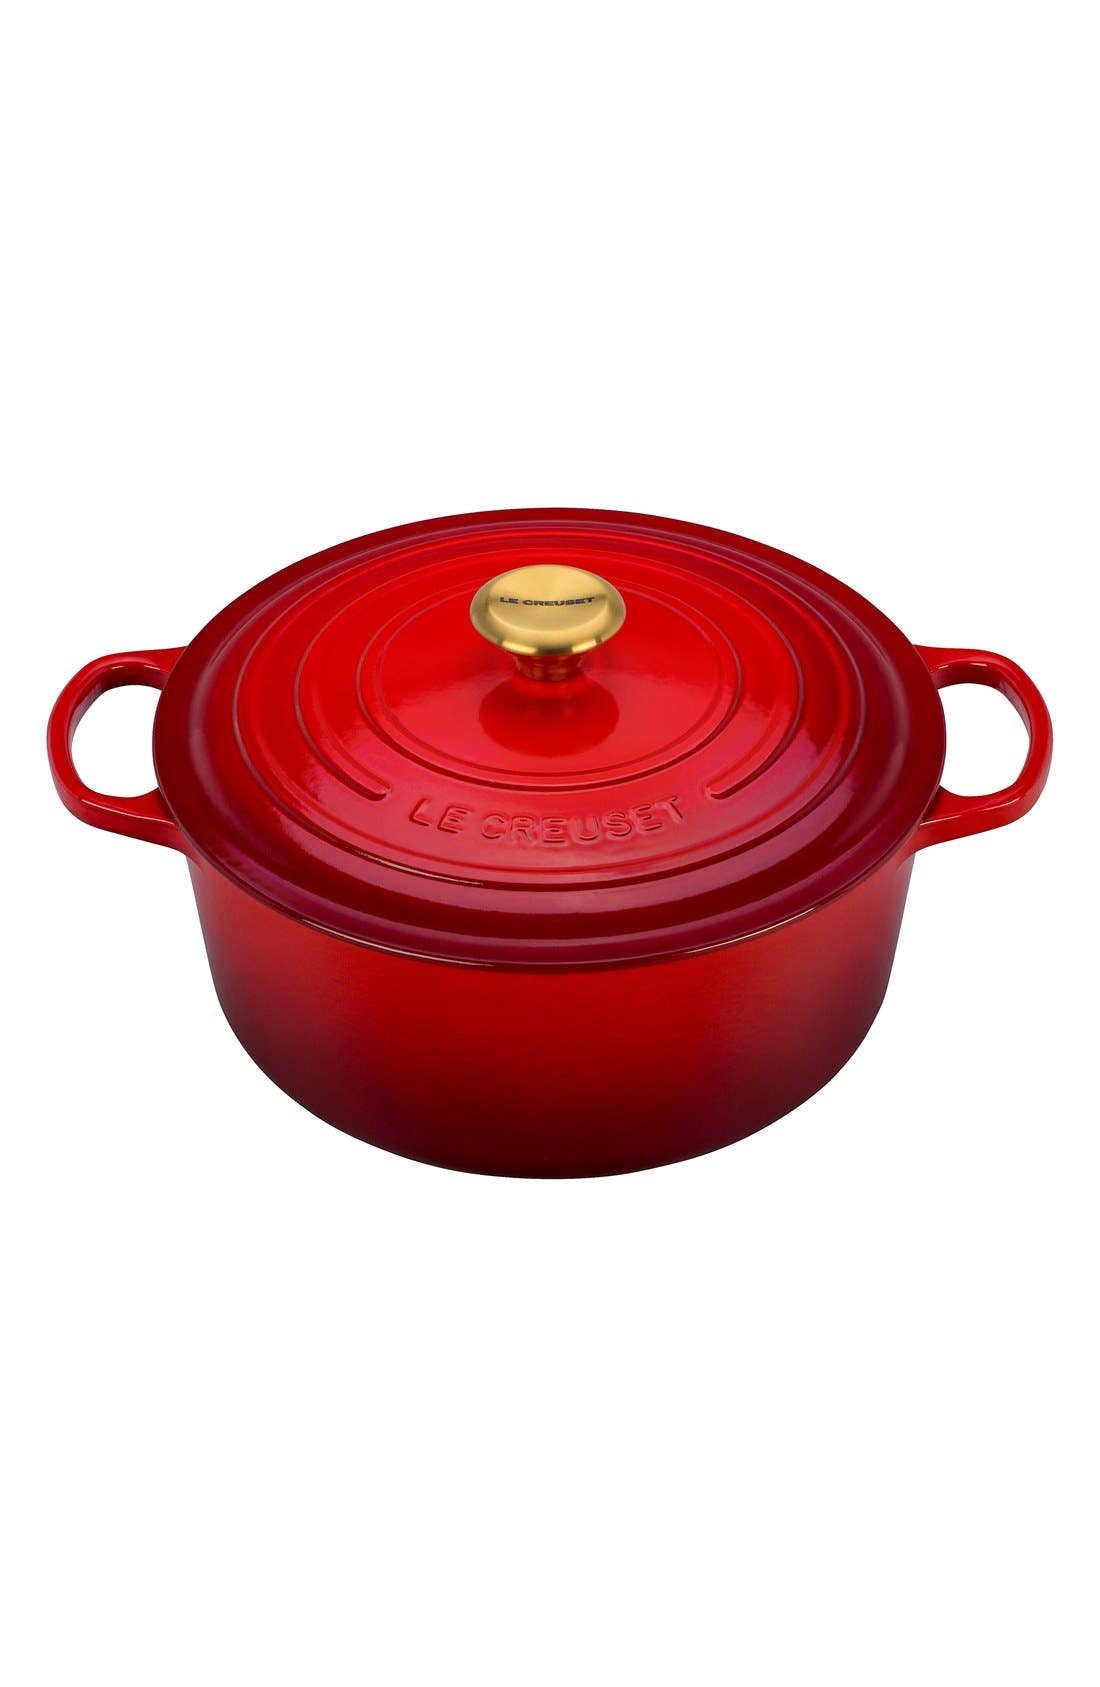 LE CREUSET Gold Knob Collection 7 1/2 Quart